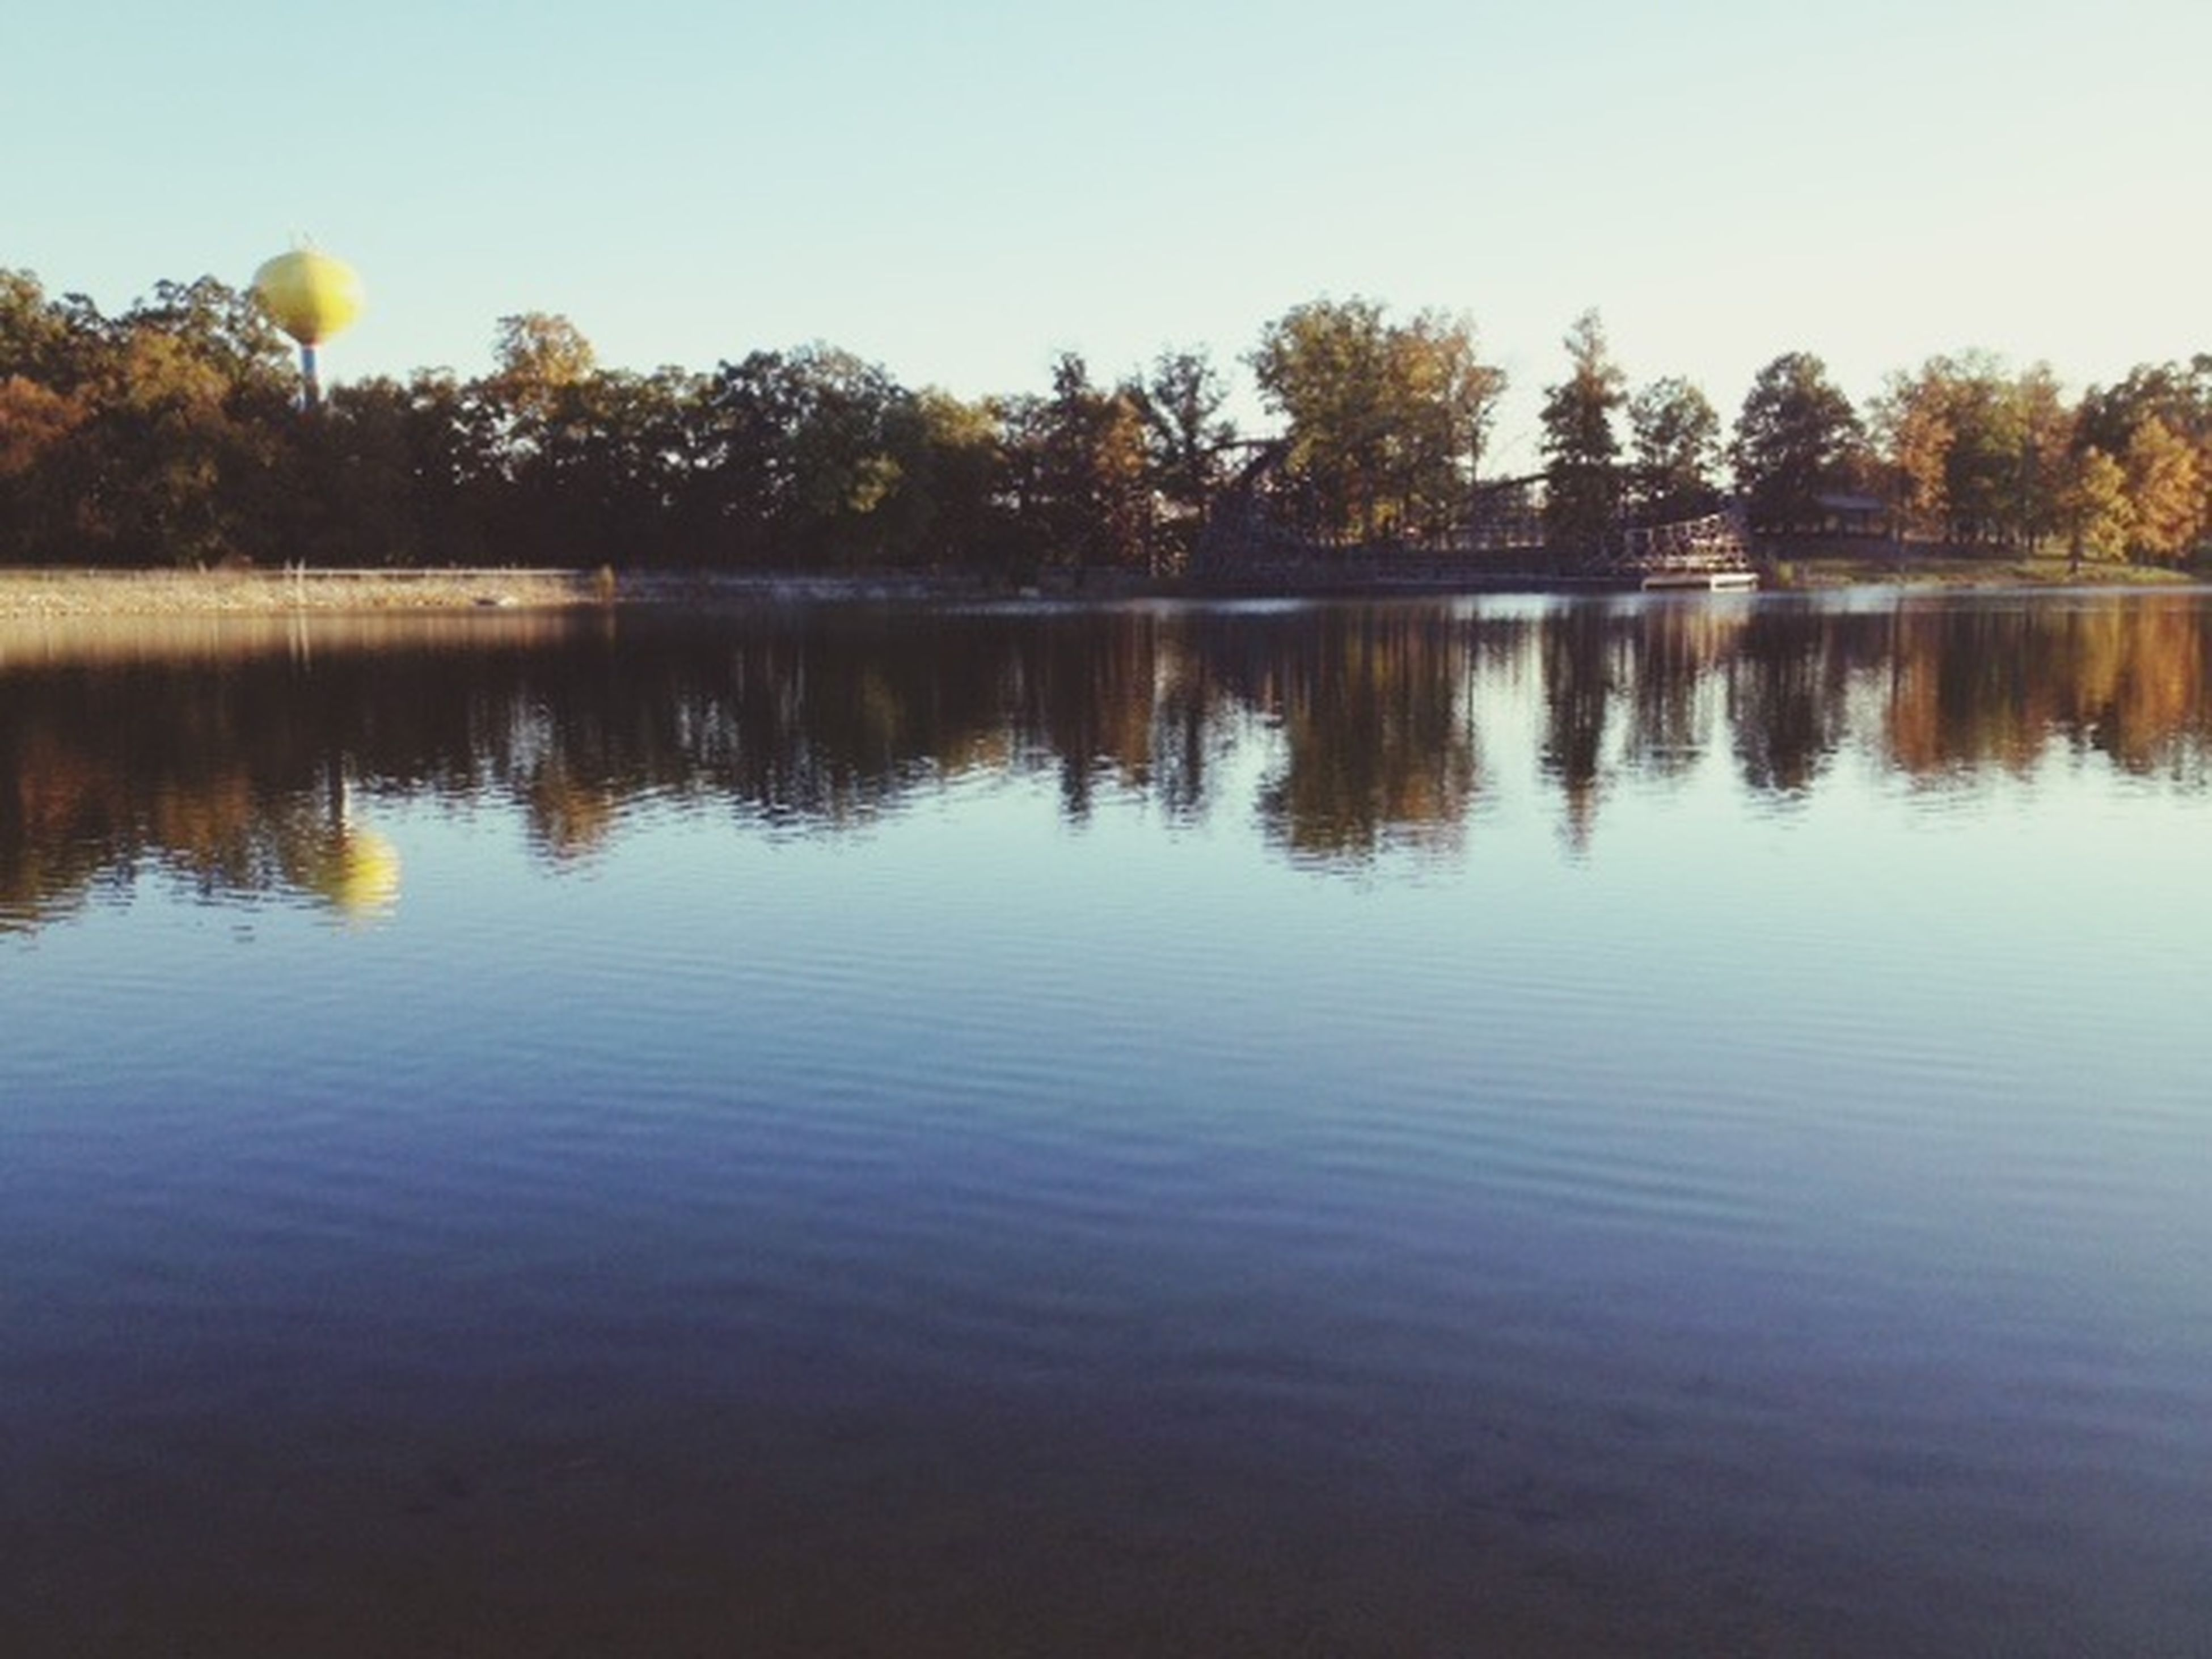 tree, reflection, water, lake, tranquility, tranquil scene, waterfront, clear sky, scenics, beauty in nature, nature, idyllic, sky, calm, standing water, outdoors, river, non-urban scene, no people, growth